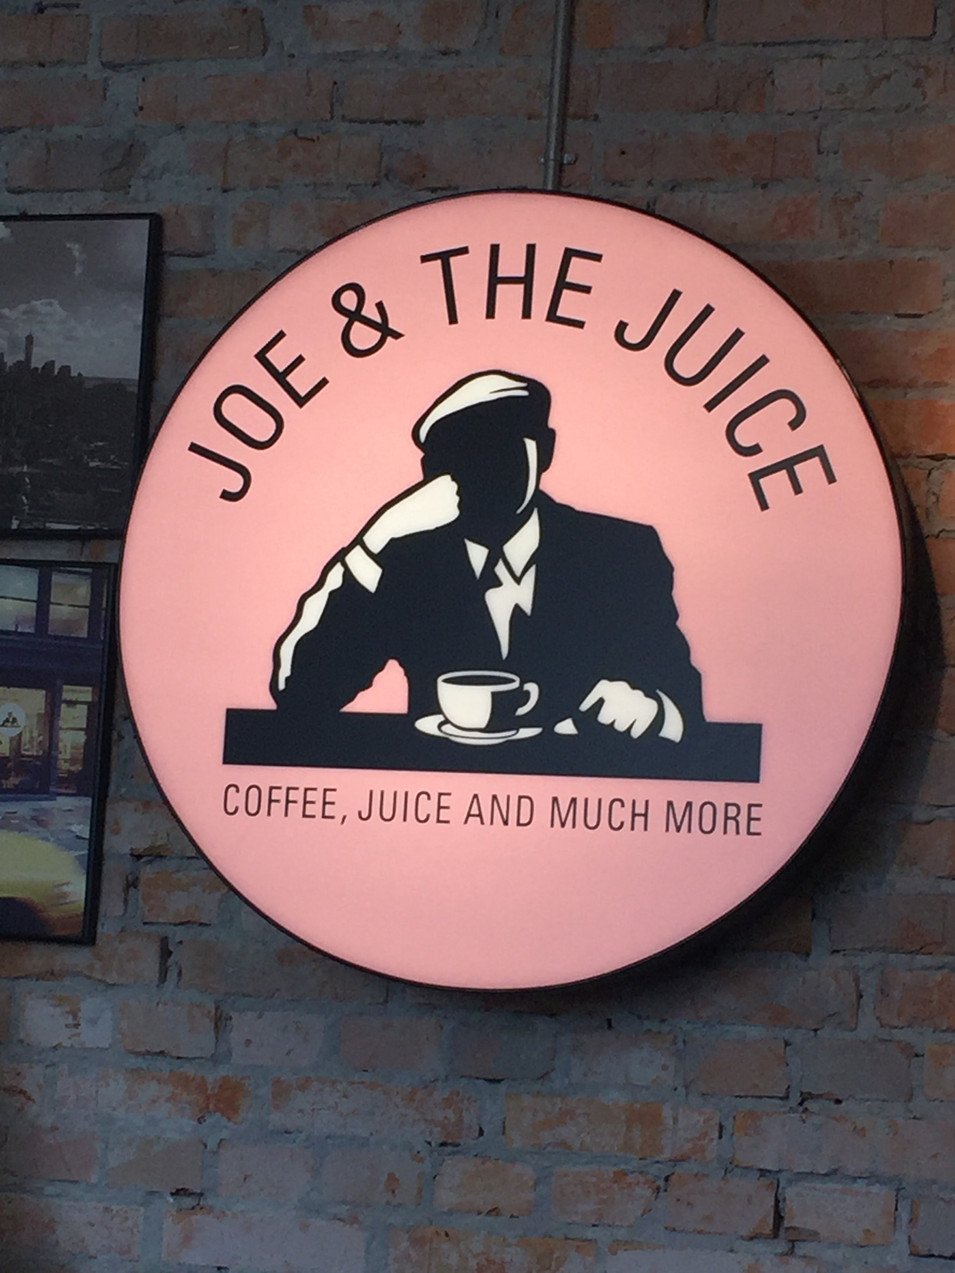 Joey and the Juice